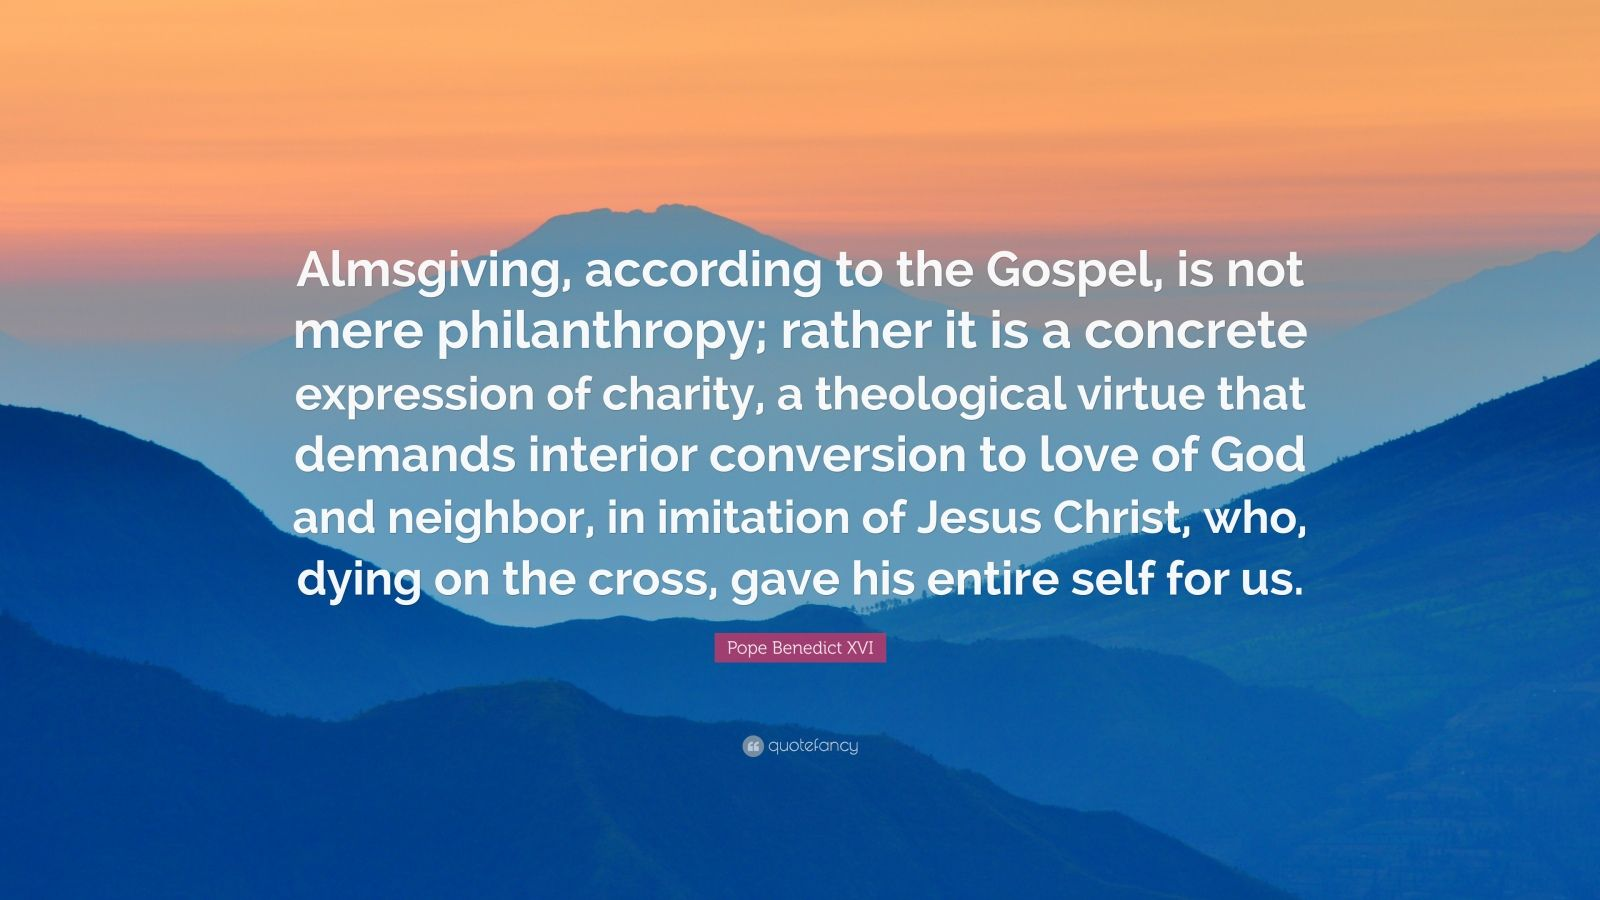 """Pope Benedict XVI Quote: """"Almsgiving, according to the Gospel, is not mere philanthropy; rather it is a concrete expression of charity, a theological virtue that demands interior conversion to love of God and neighbor, in imitation of Jesus Christ, who, dying on the cross, gave his entire self for us."""""""